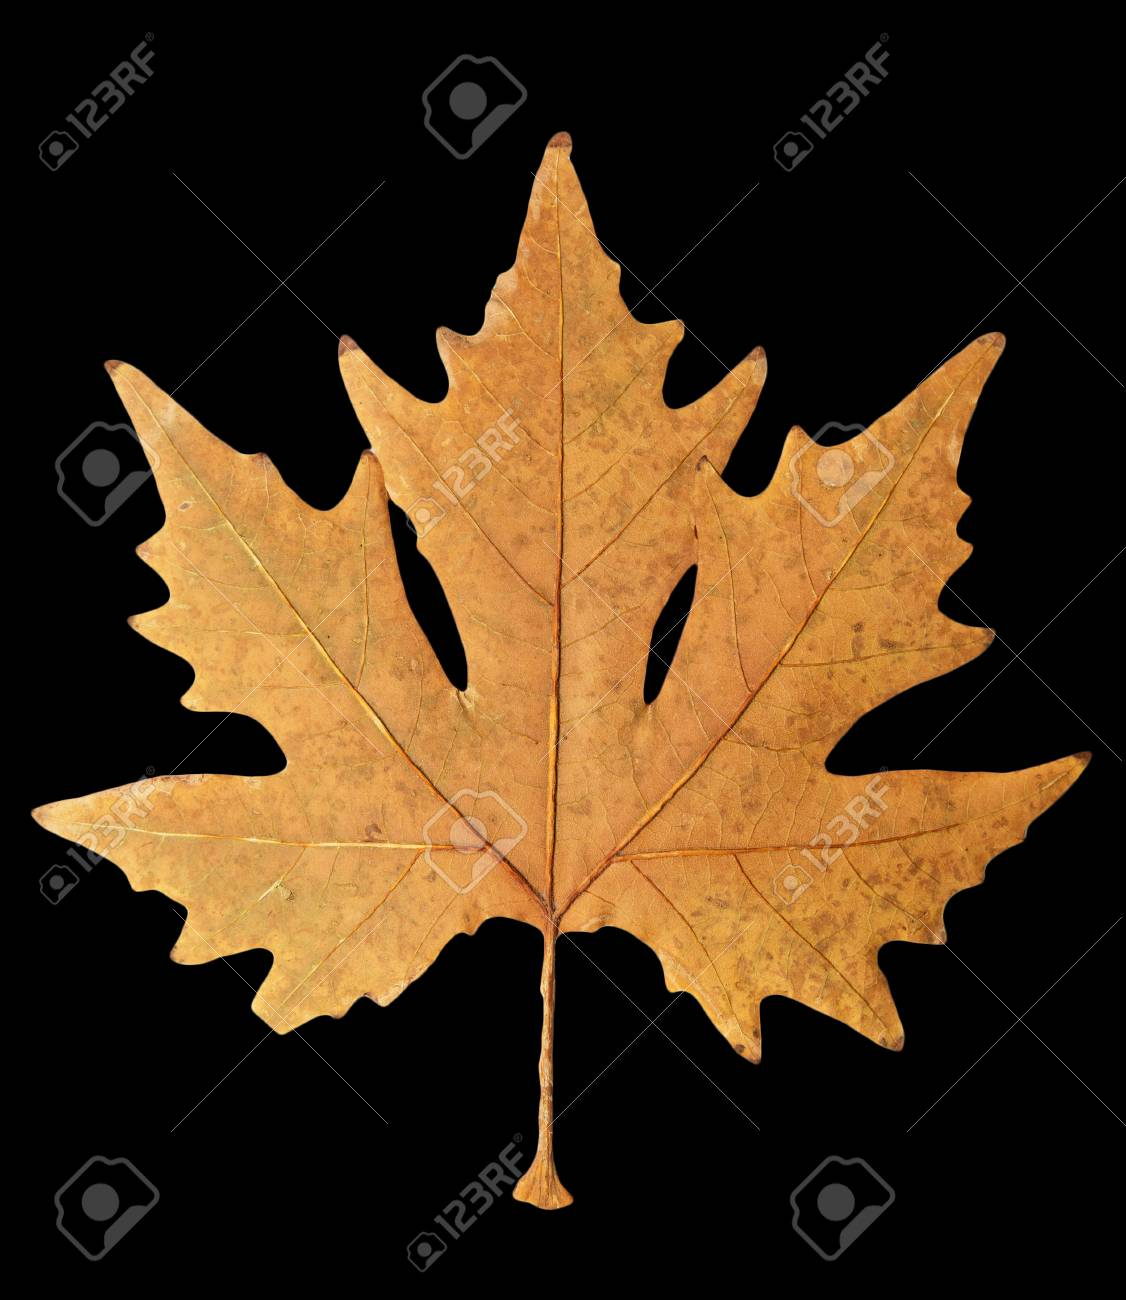 autumn leaf on a black background Stock Photo - 24103640